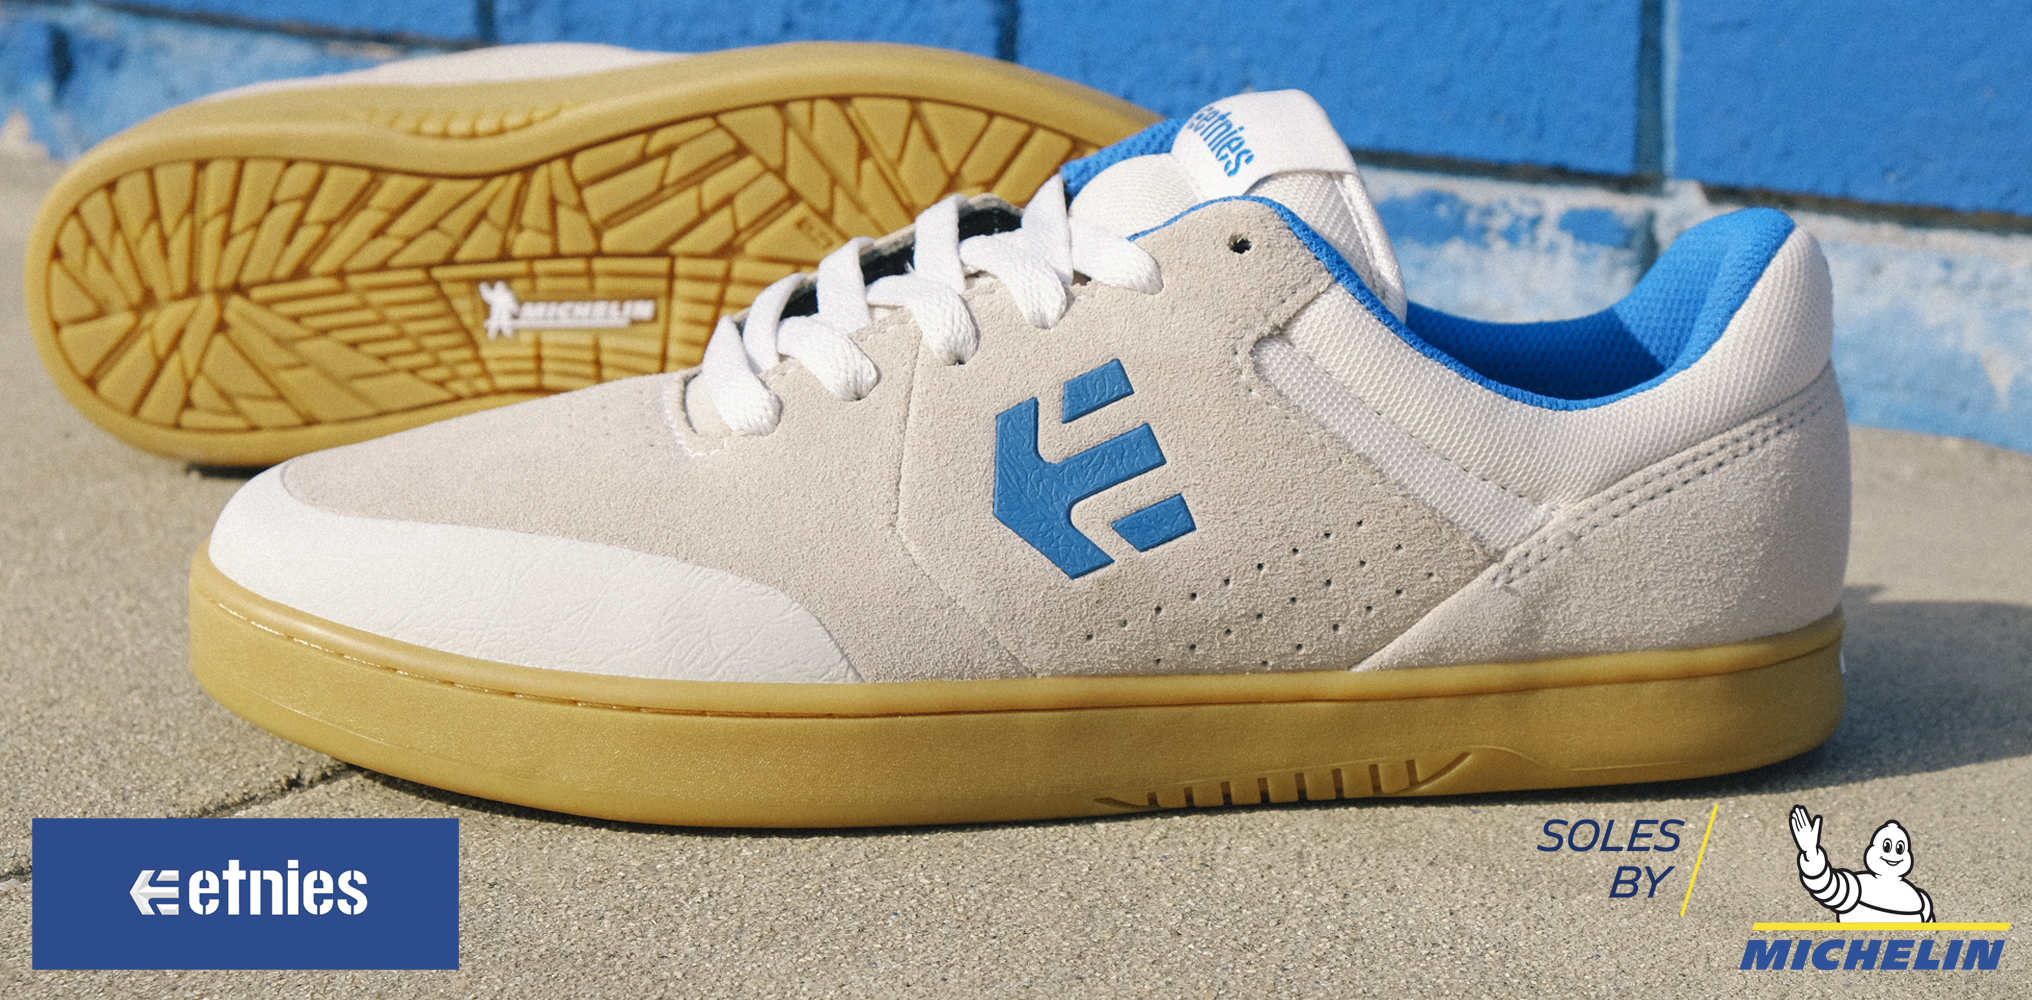 The Michelin sole on the etnies skate shoes